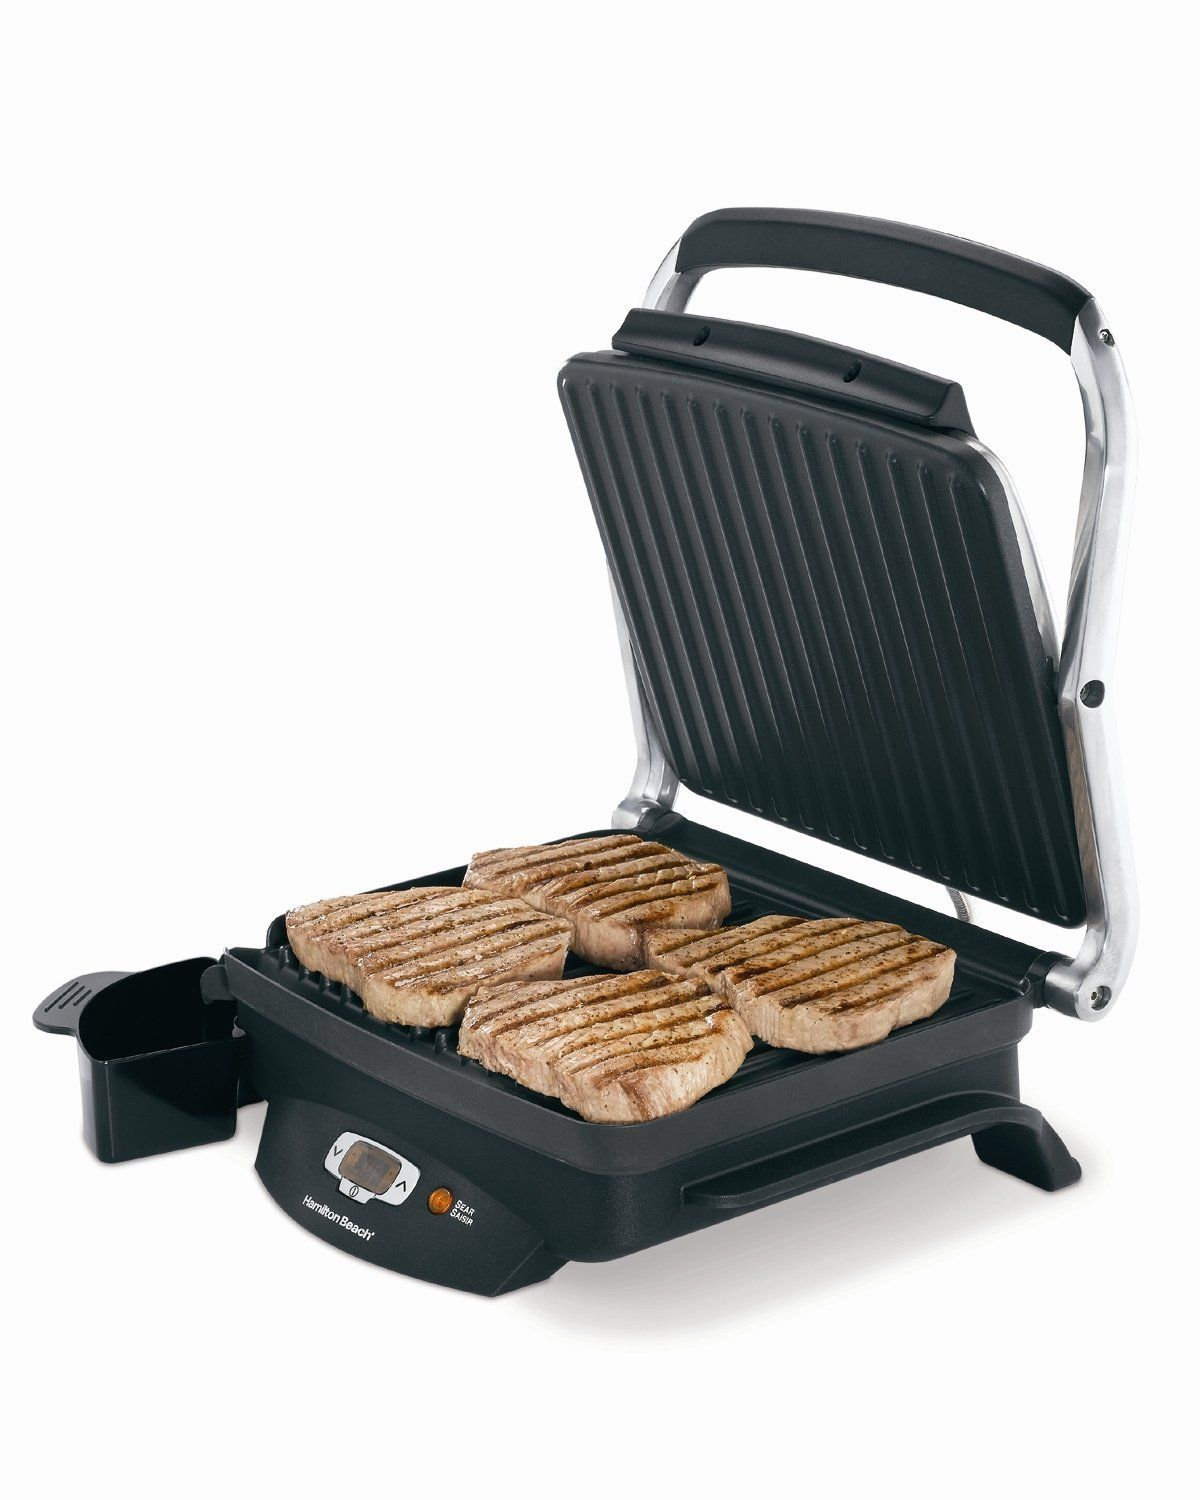 Indoor Electric Grill Searing BBQ Grills Small Kitchen Appliances Hamilton Beach